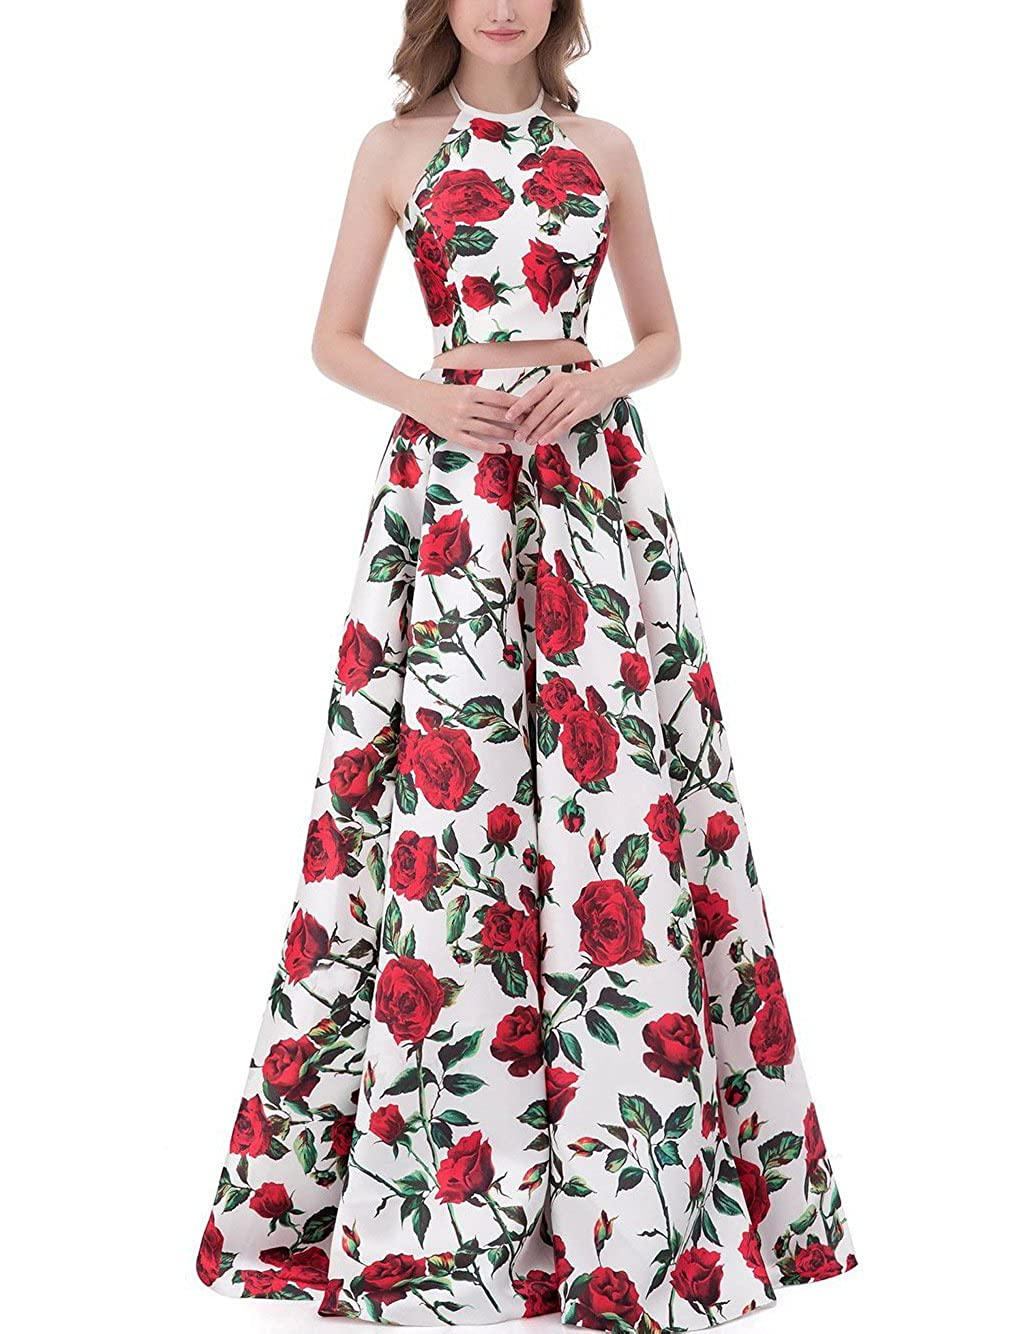 b7f7ecd08a Yiweir Women s Floral Two Piece Prom Dresses 2018 Long Halter Formal  Evening Gowns YF005 at Amazon Women s Clothing store